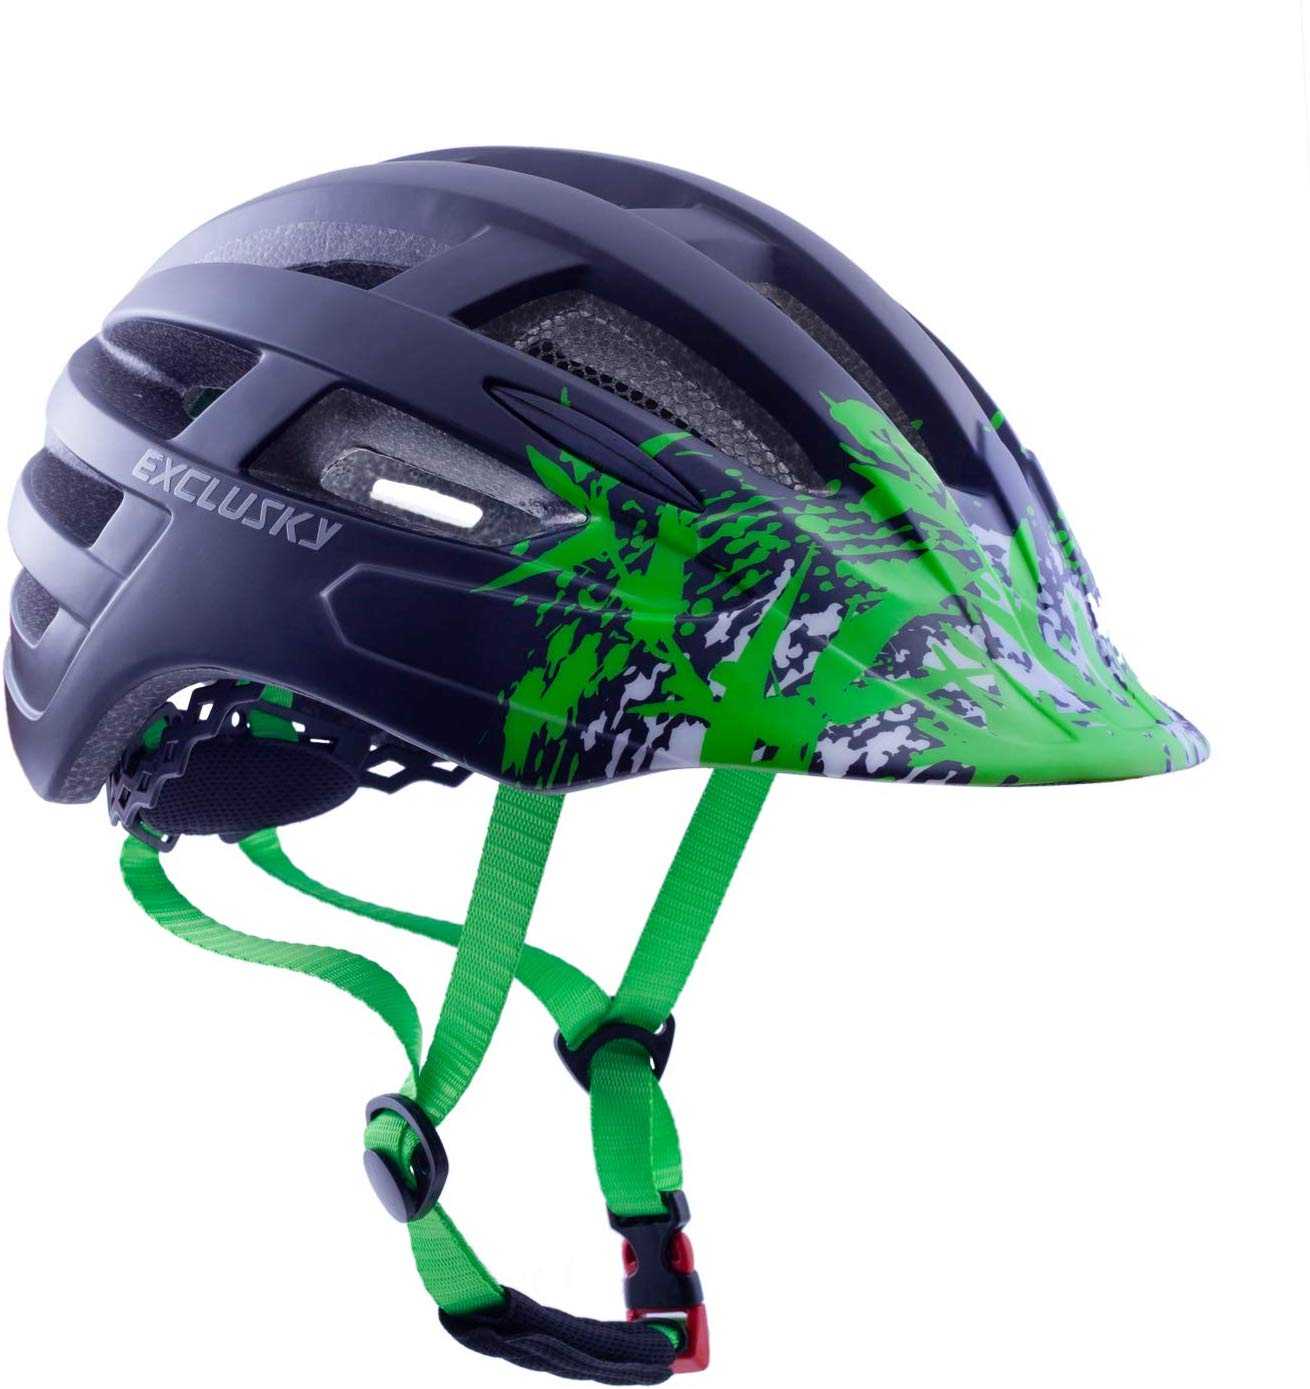 Exclusky Cycle Helmet CE Certified Adjustable Lightweight Bike Bicycle Helmets